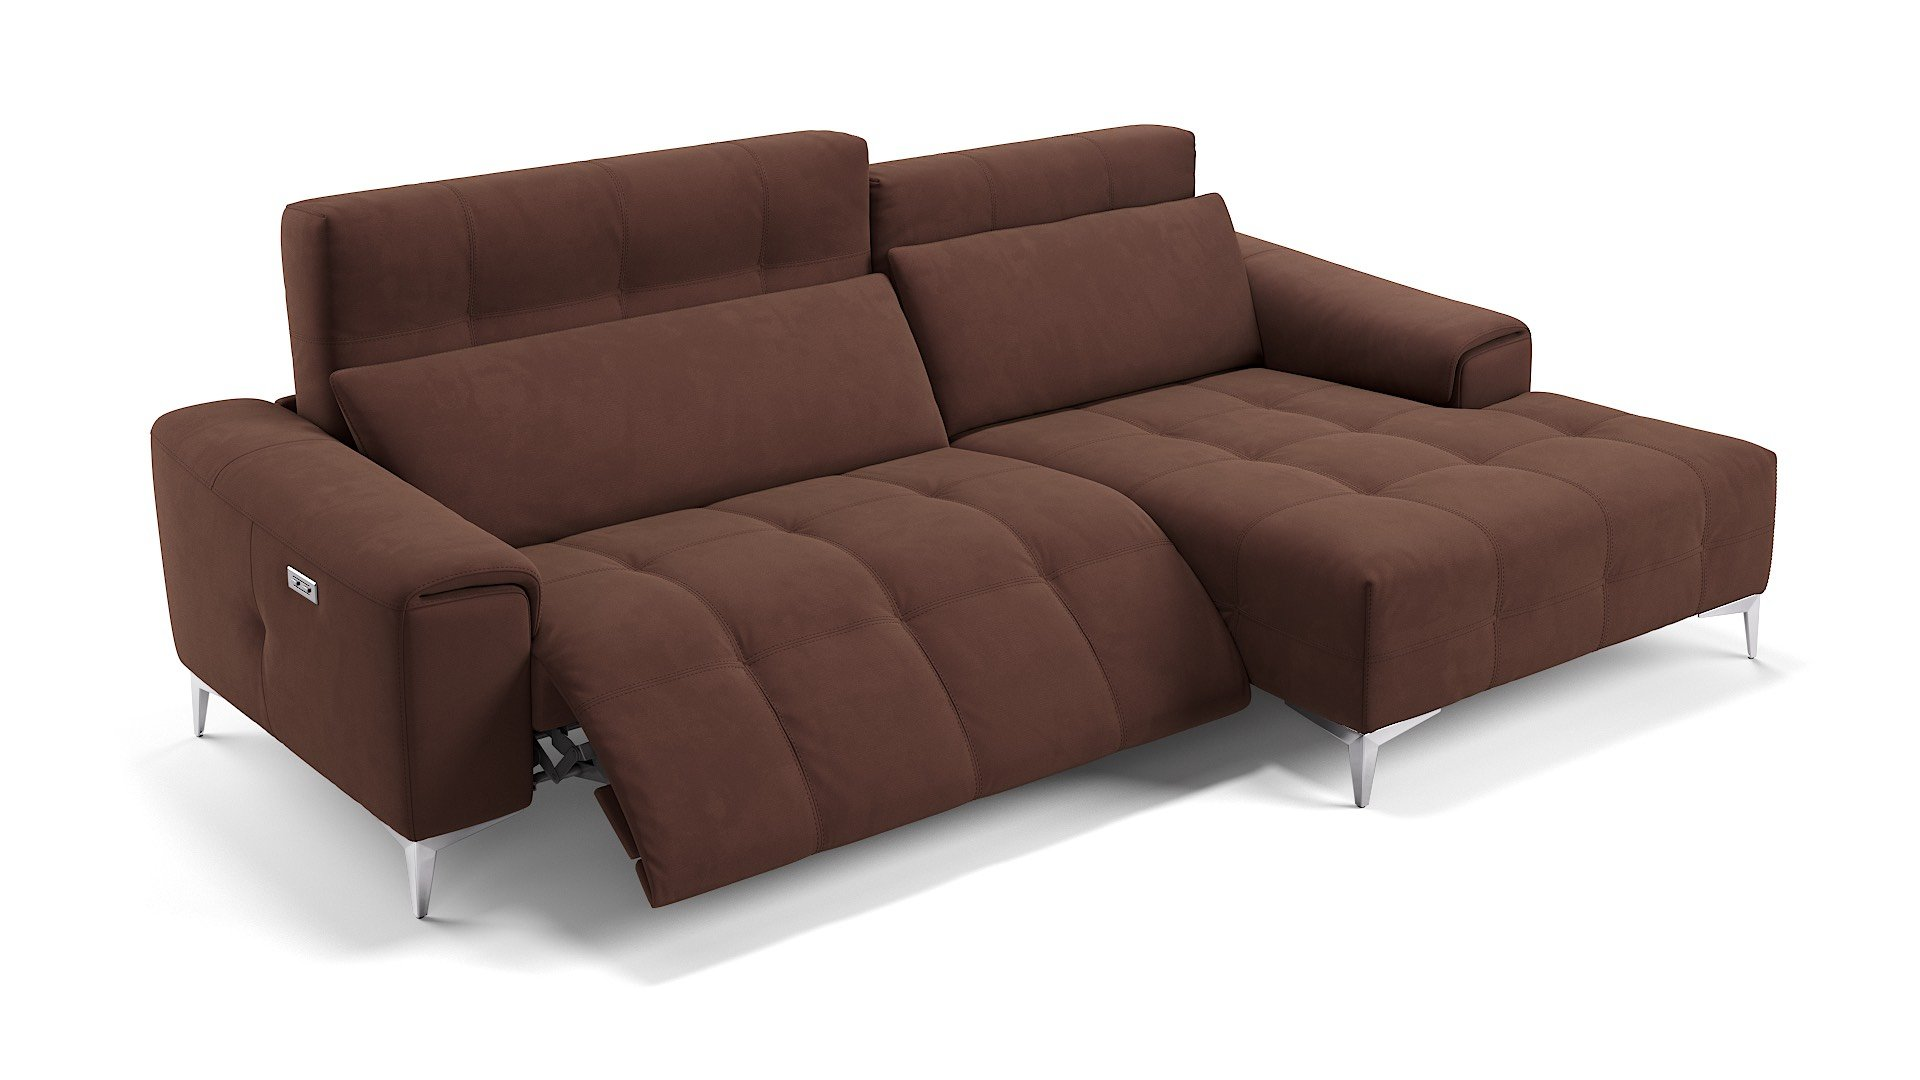 Stoff Ecksofa Mini SALENTO